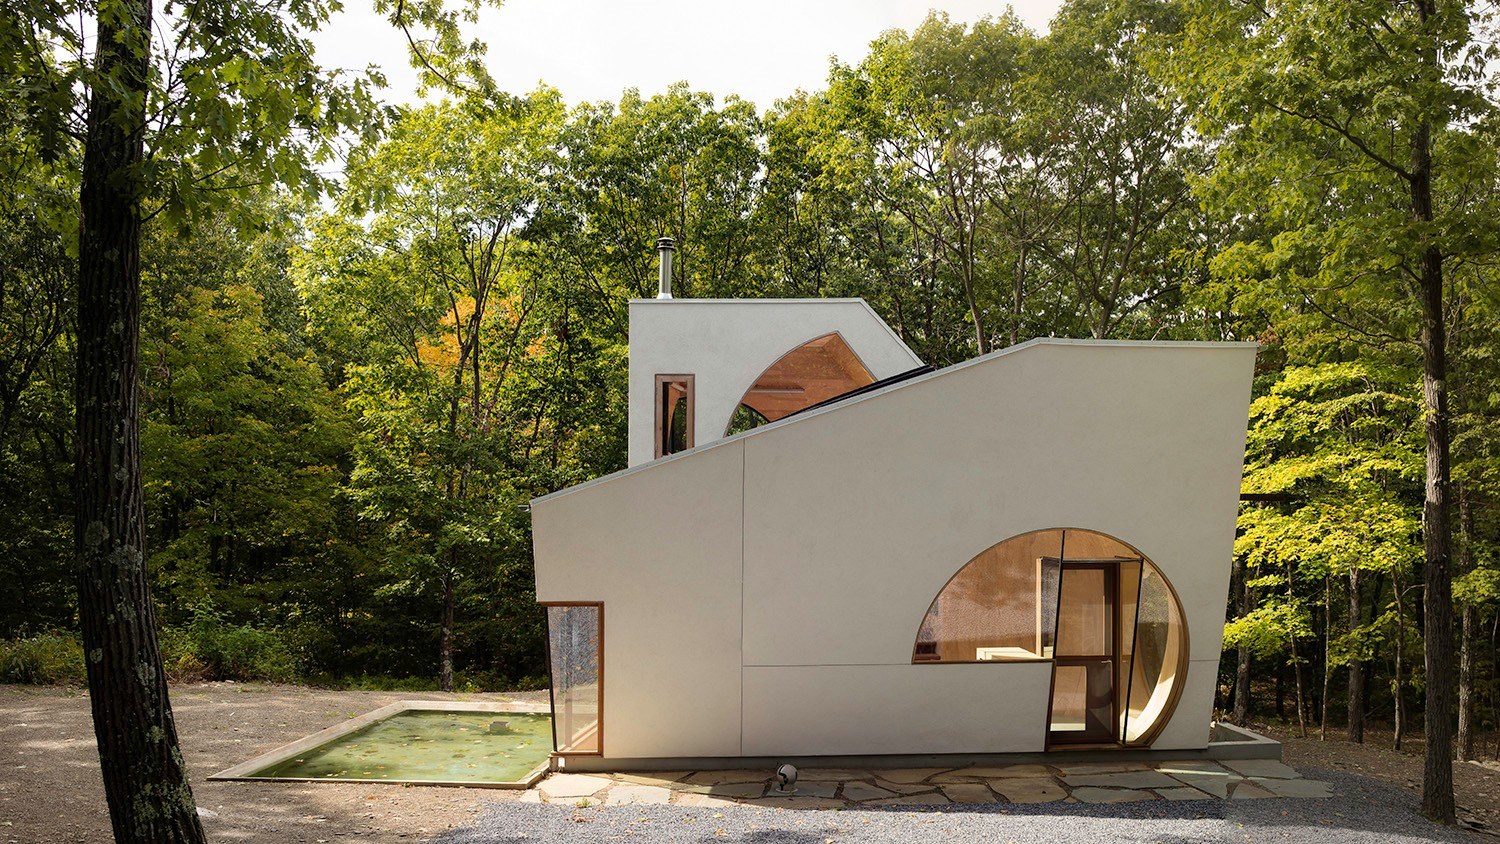 https://s3.us-east-2.amazonaws.com/steven-holl/uploads/projects/project-images/PaulWarchol_EOI_16-042-008A_WH.jpg